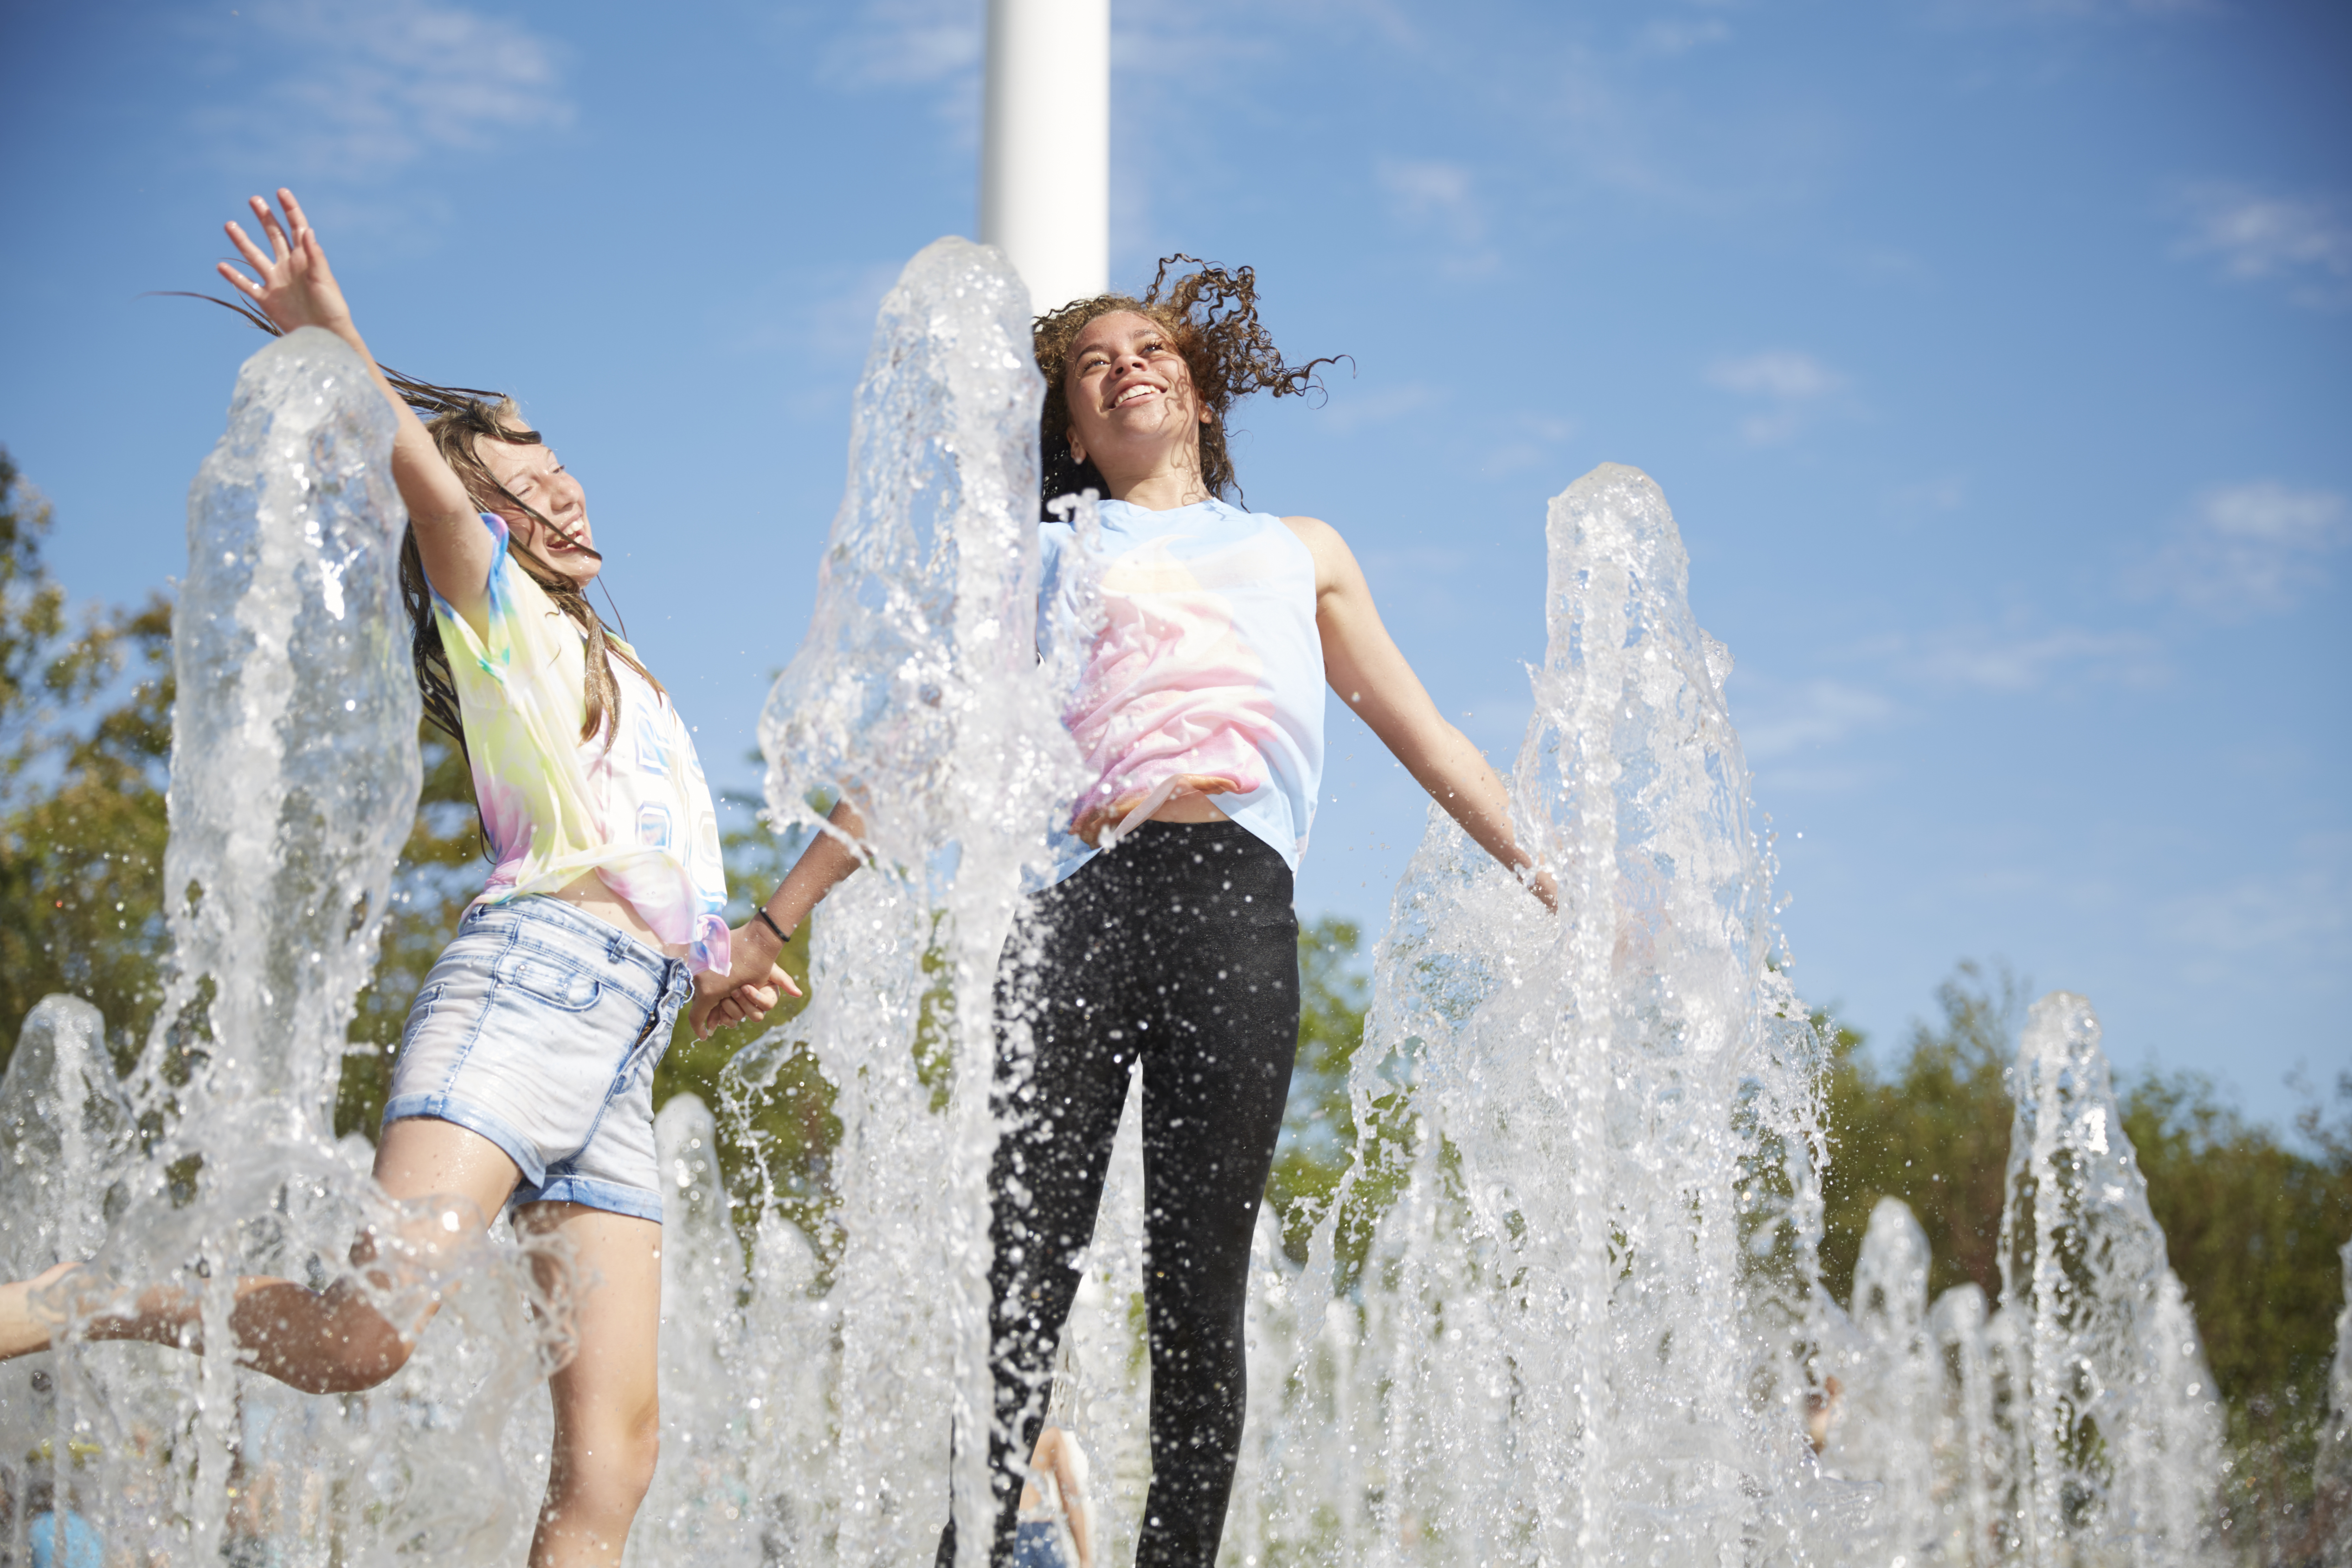 Spend sunrise to sunset at the Park this May half term | Queen